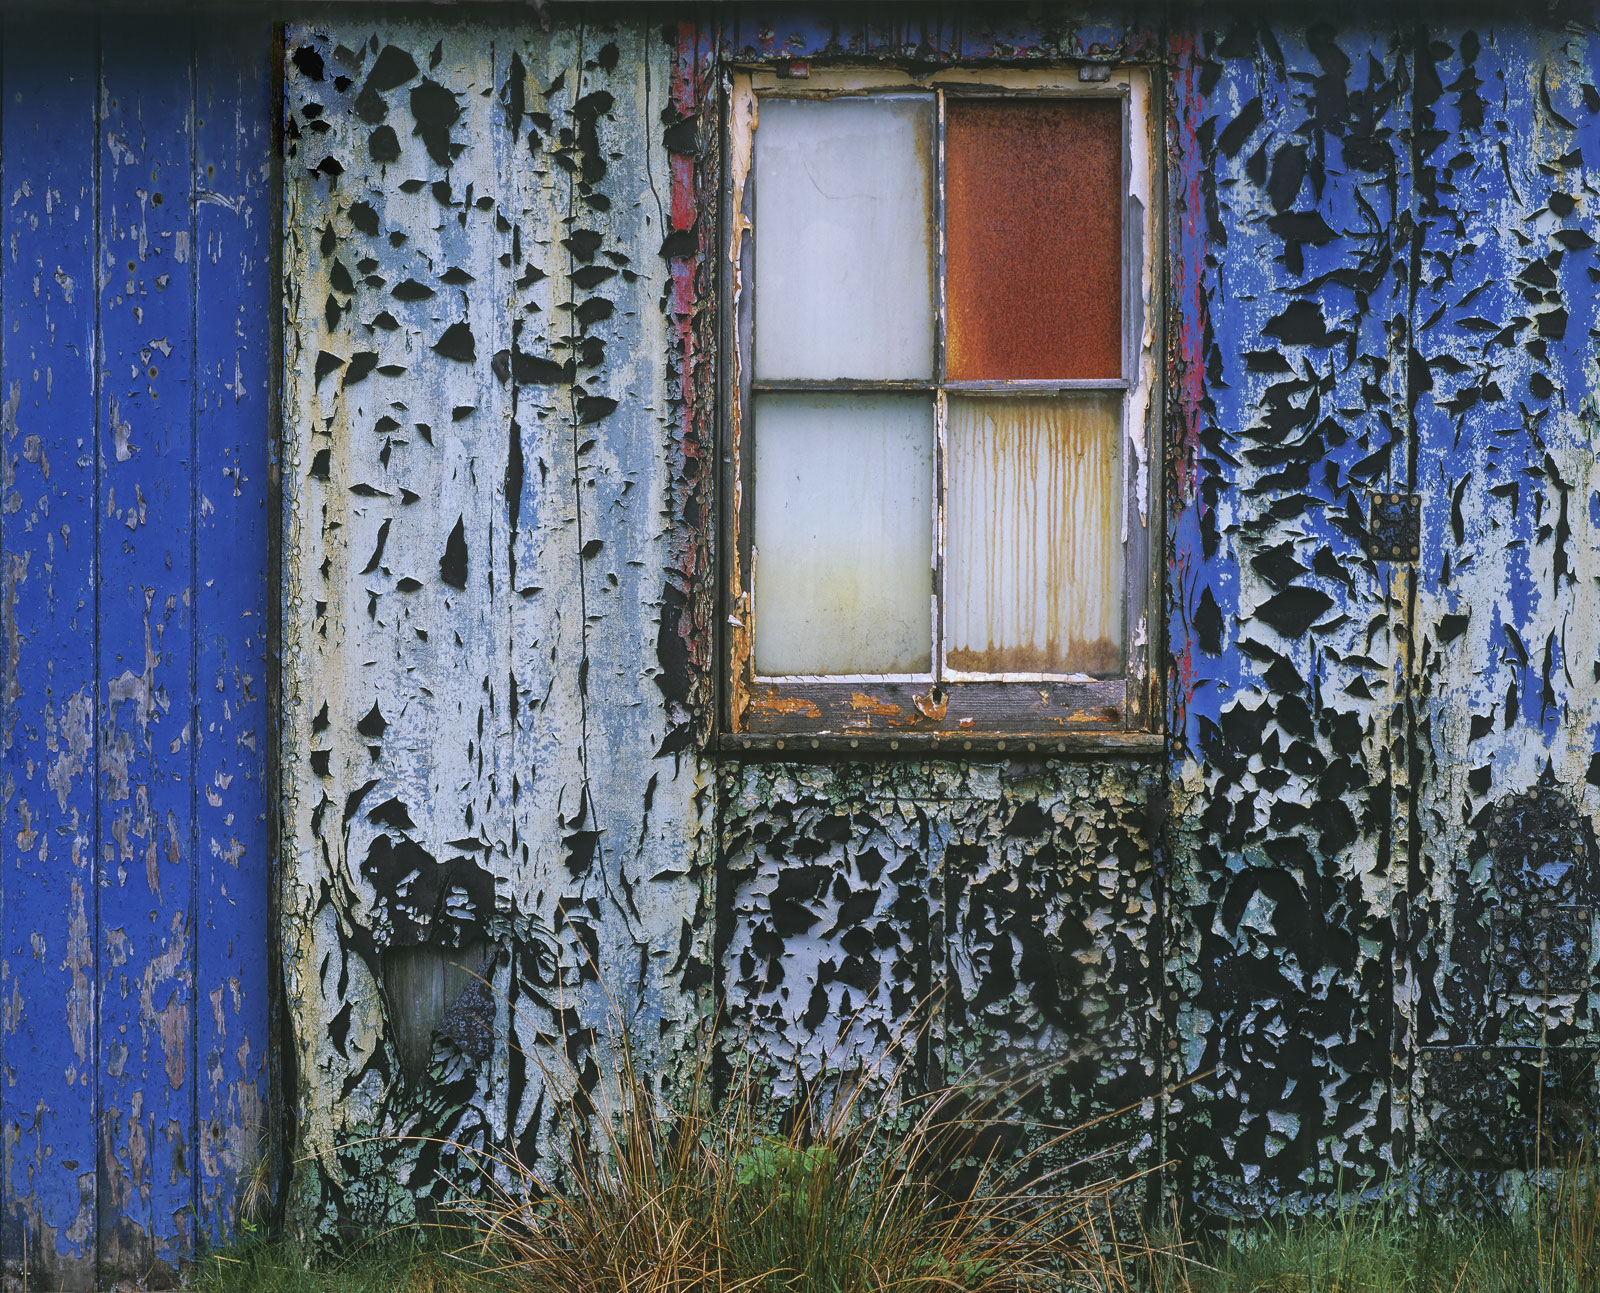 Rough and Unsteady, Kinlochbervie, Assynt, Scotland, shed, road, texture, peeling, paint, colours, combination, rusted, , photo